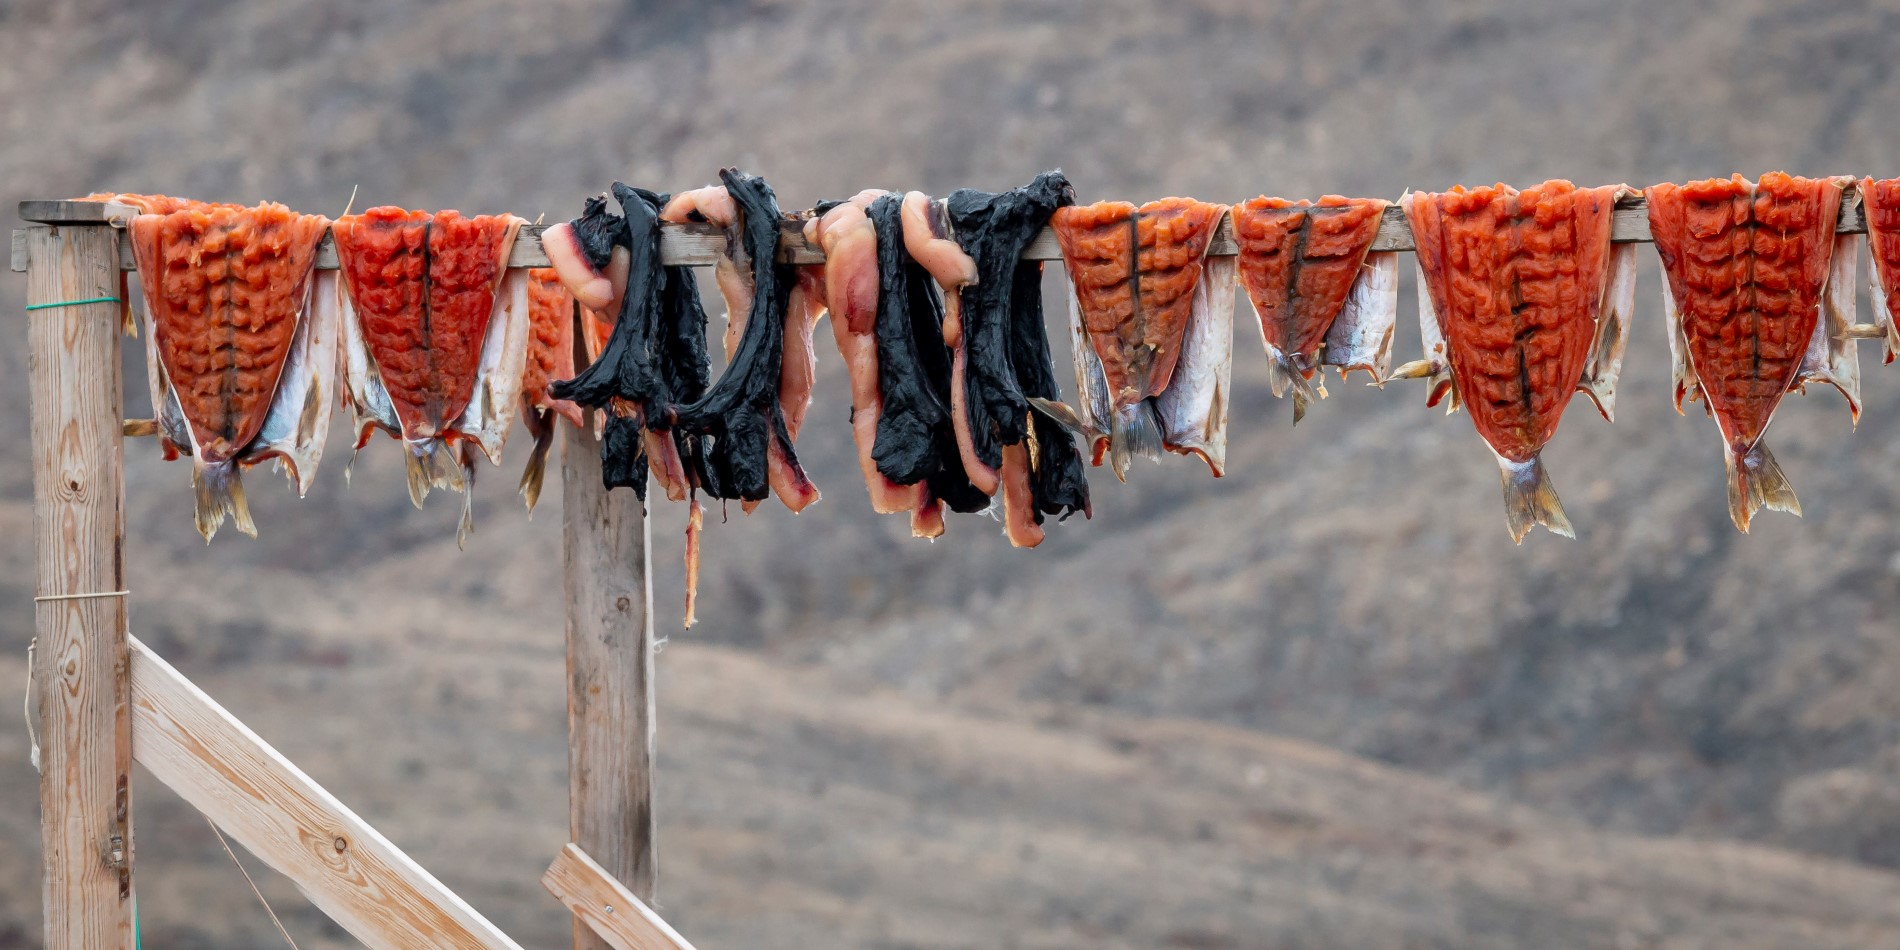 Fish hung outside to dry